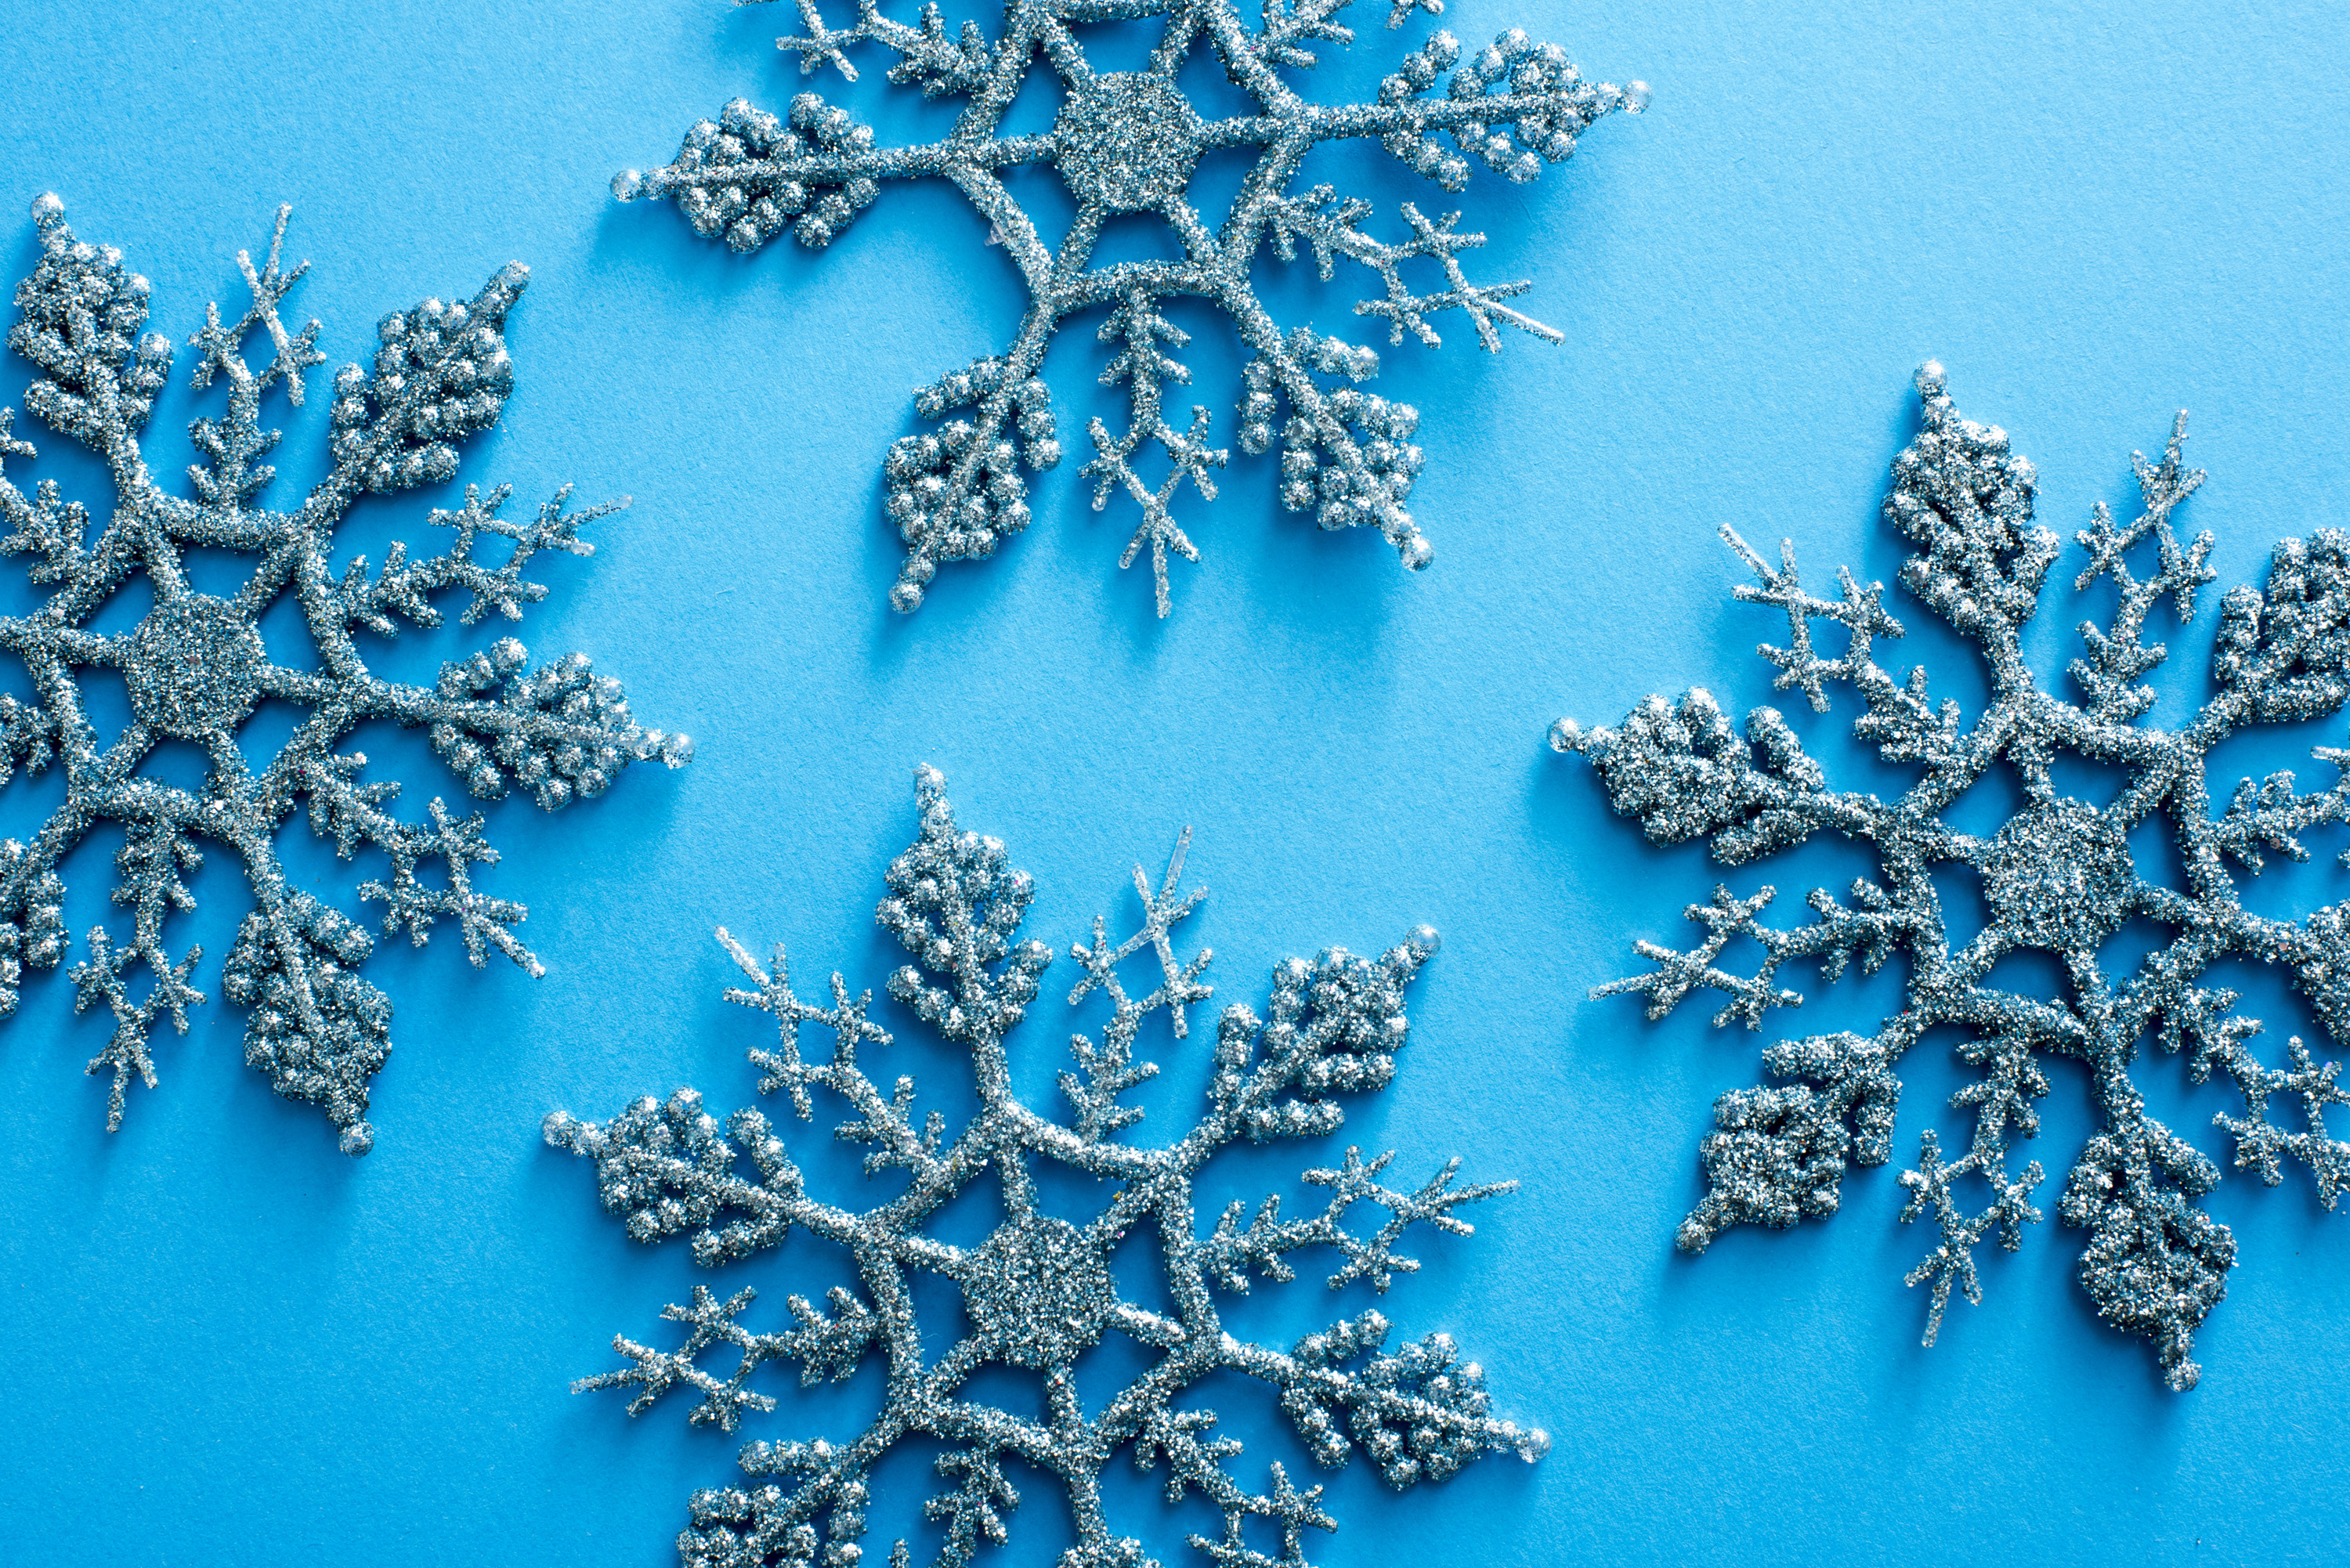 Blue glitter Christmas snowflake decorations arranged on a matching background for a festive holiday pattern